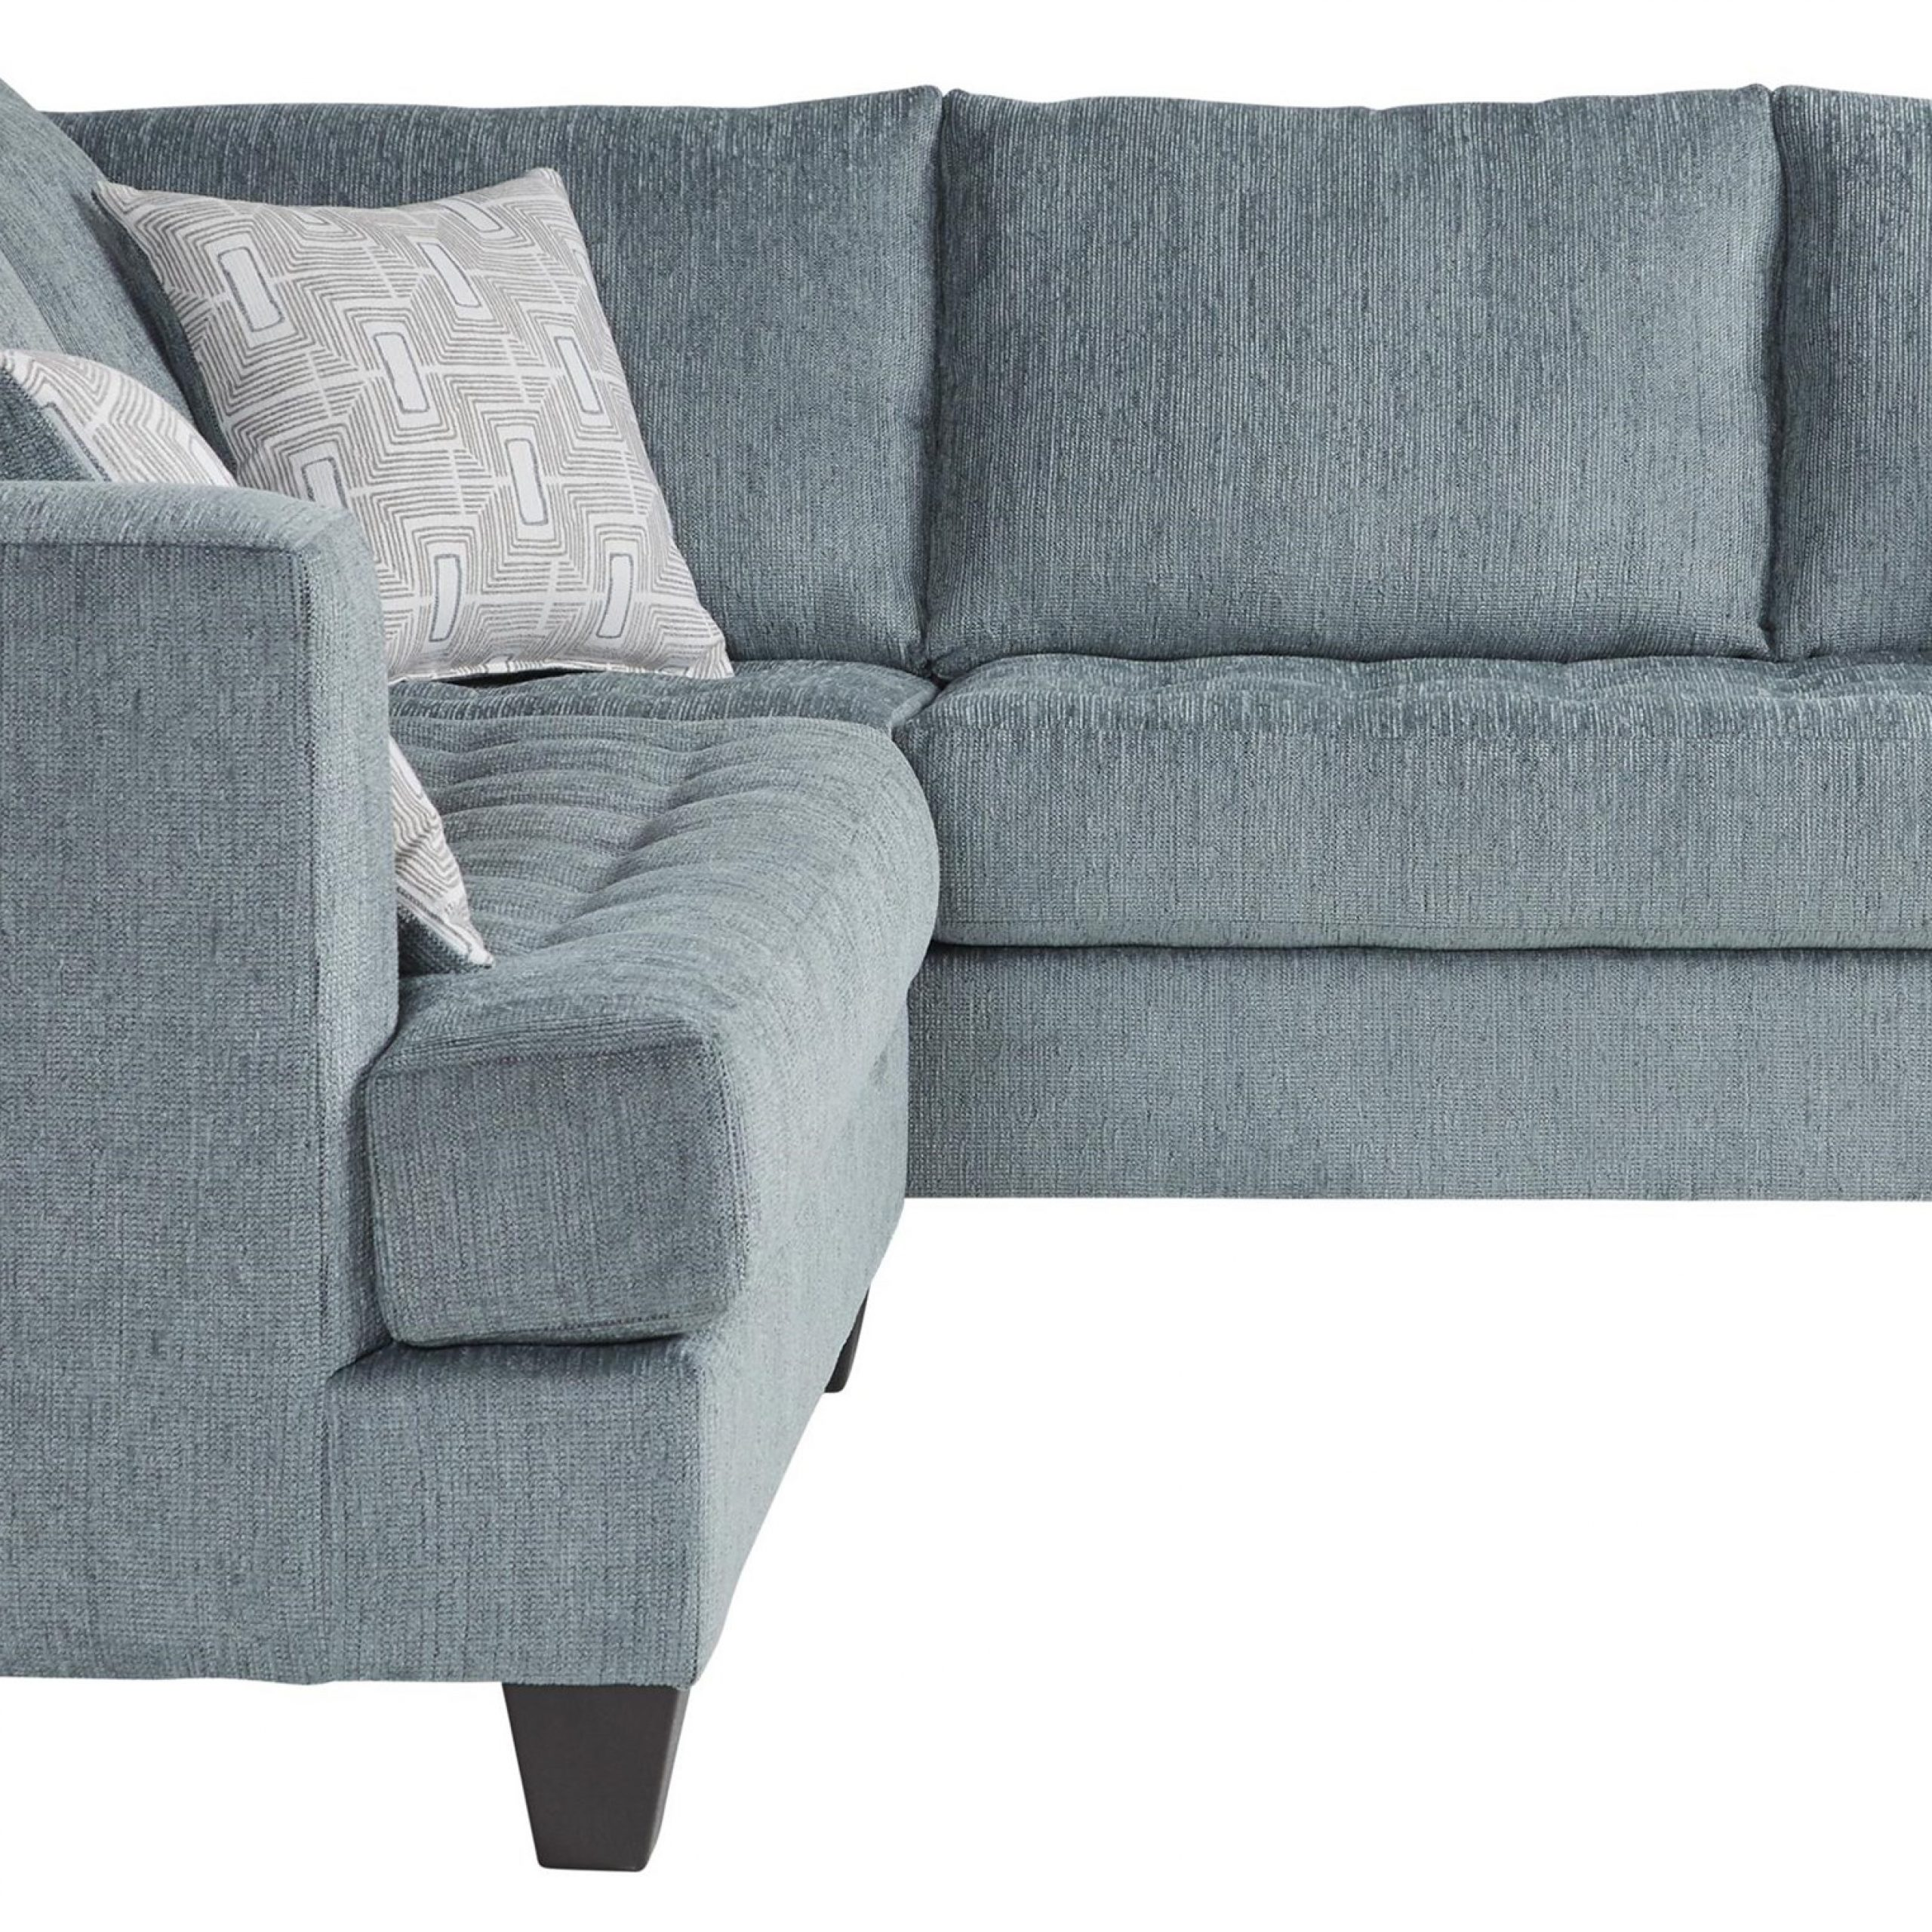 Most Popular Serta Upholstery Sectionals: Ashas Spiritual Essence In Harmon Roll Arm Sectional Sofas (View 6 of 25)